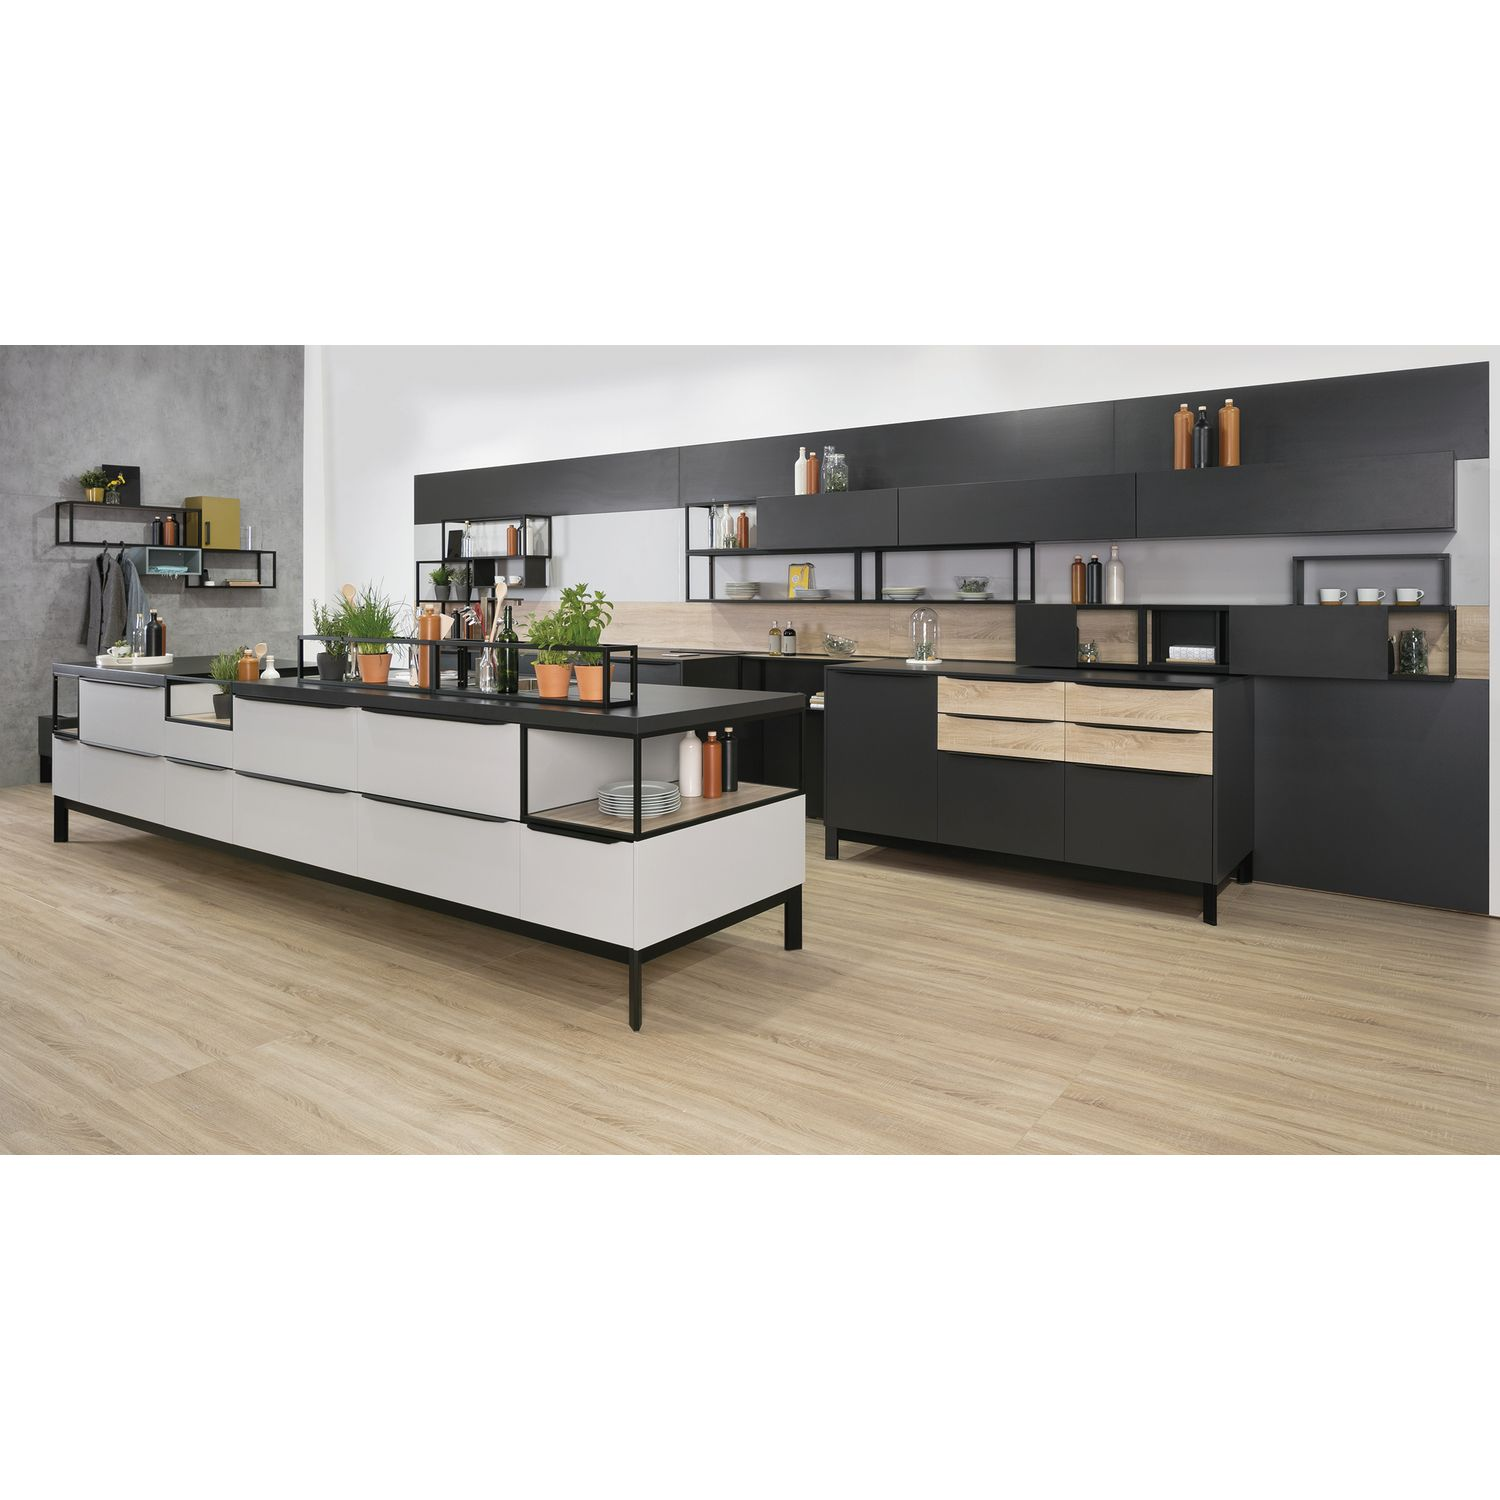 regal smartcube breite 900 h he 350 tiefe 250 mm alu. Black Bedroom Furniture Sets. Home Design Ideas